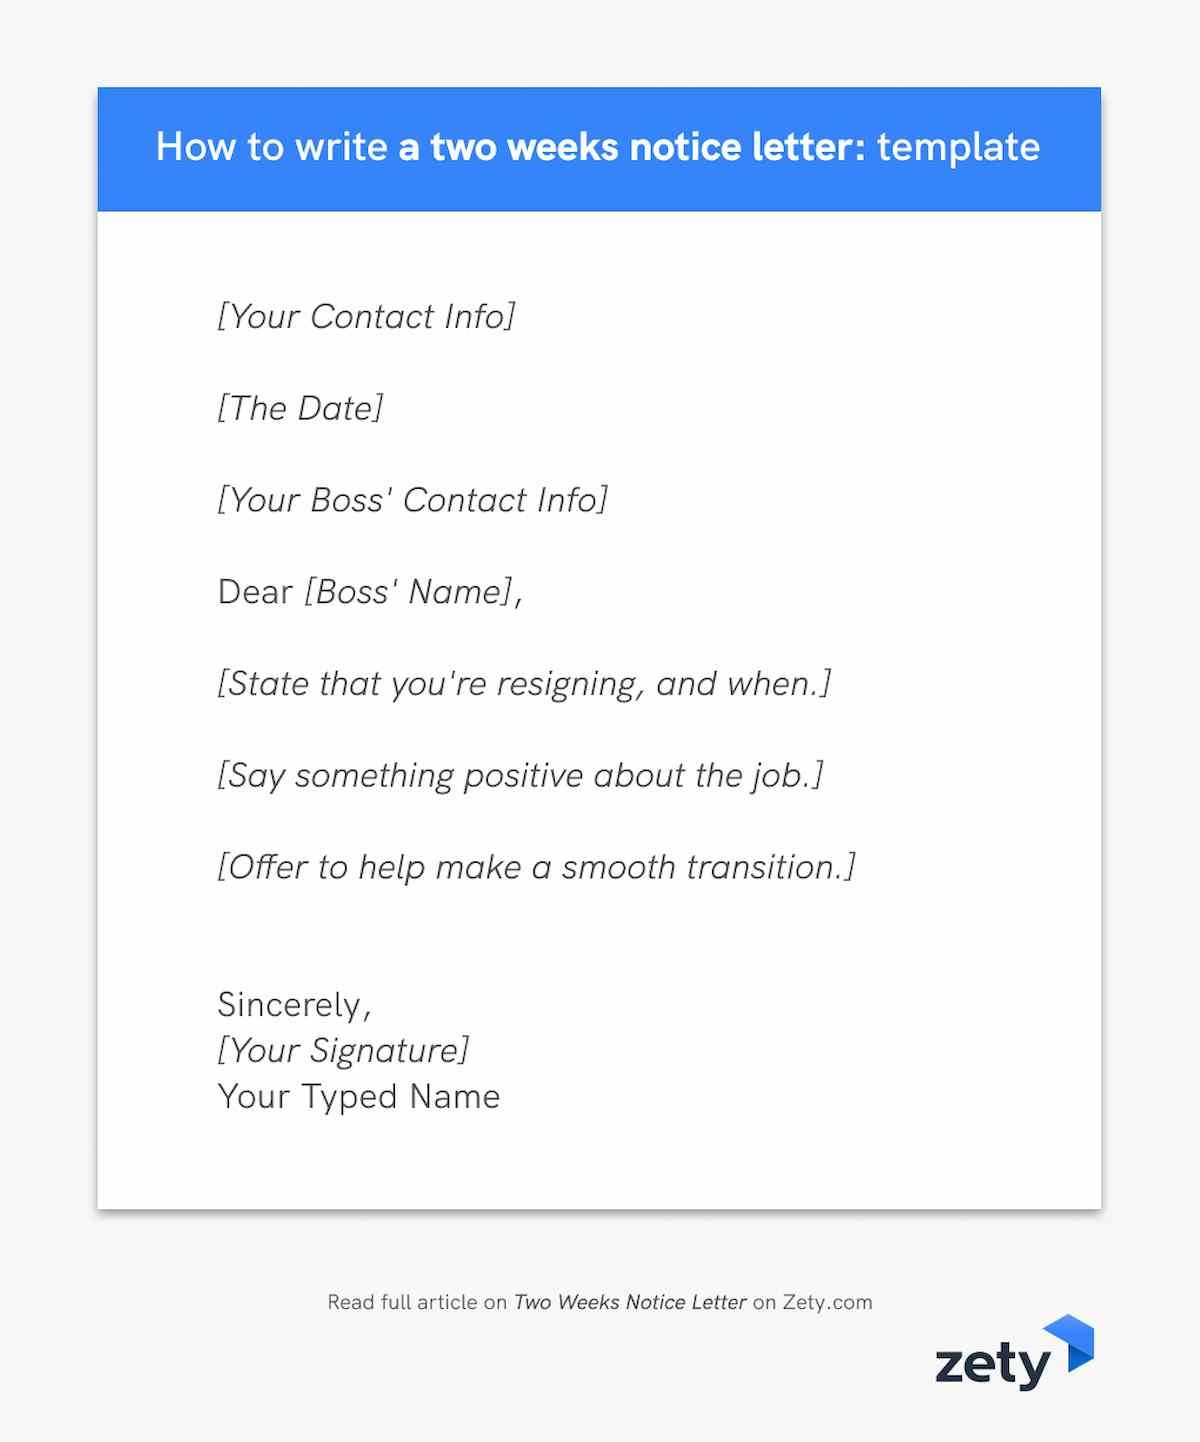 Template for how to write a two weeks notice letter